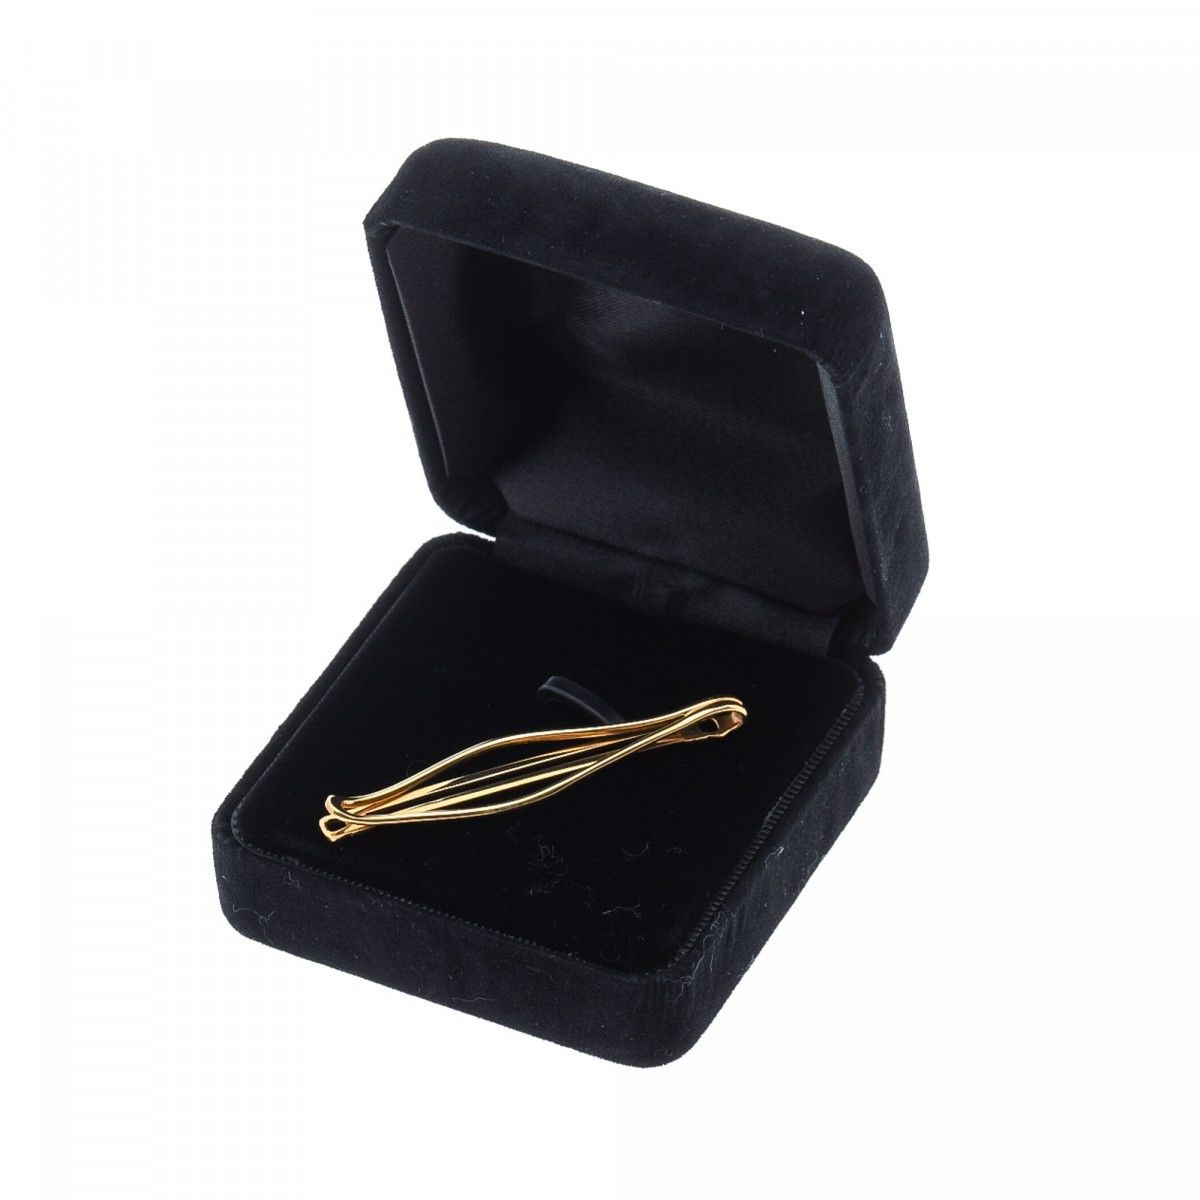 0ebe58b1e376 Tiffany Tie Clip 18K Yellow Gold - LXRandCo - Pre-Owned Luxury Vintage